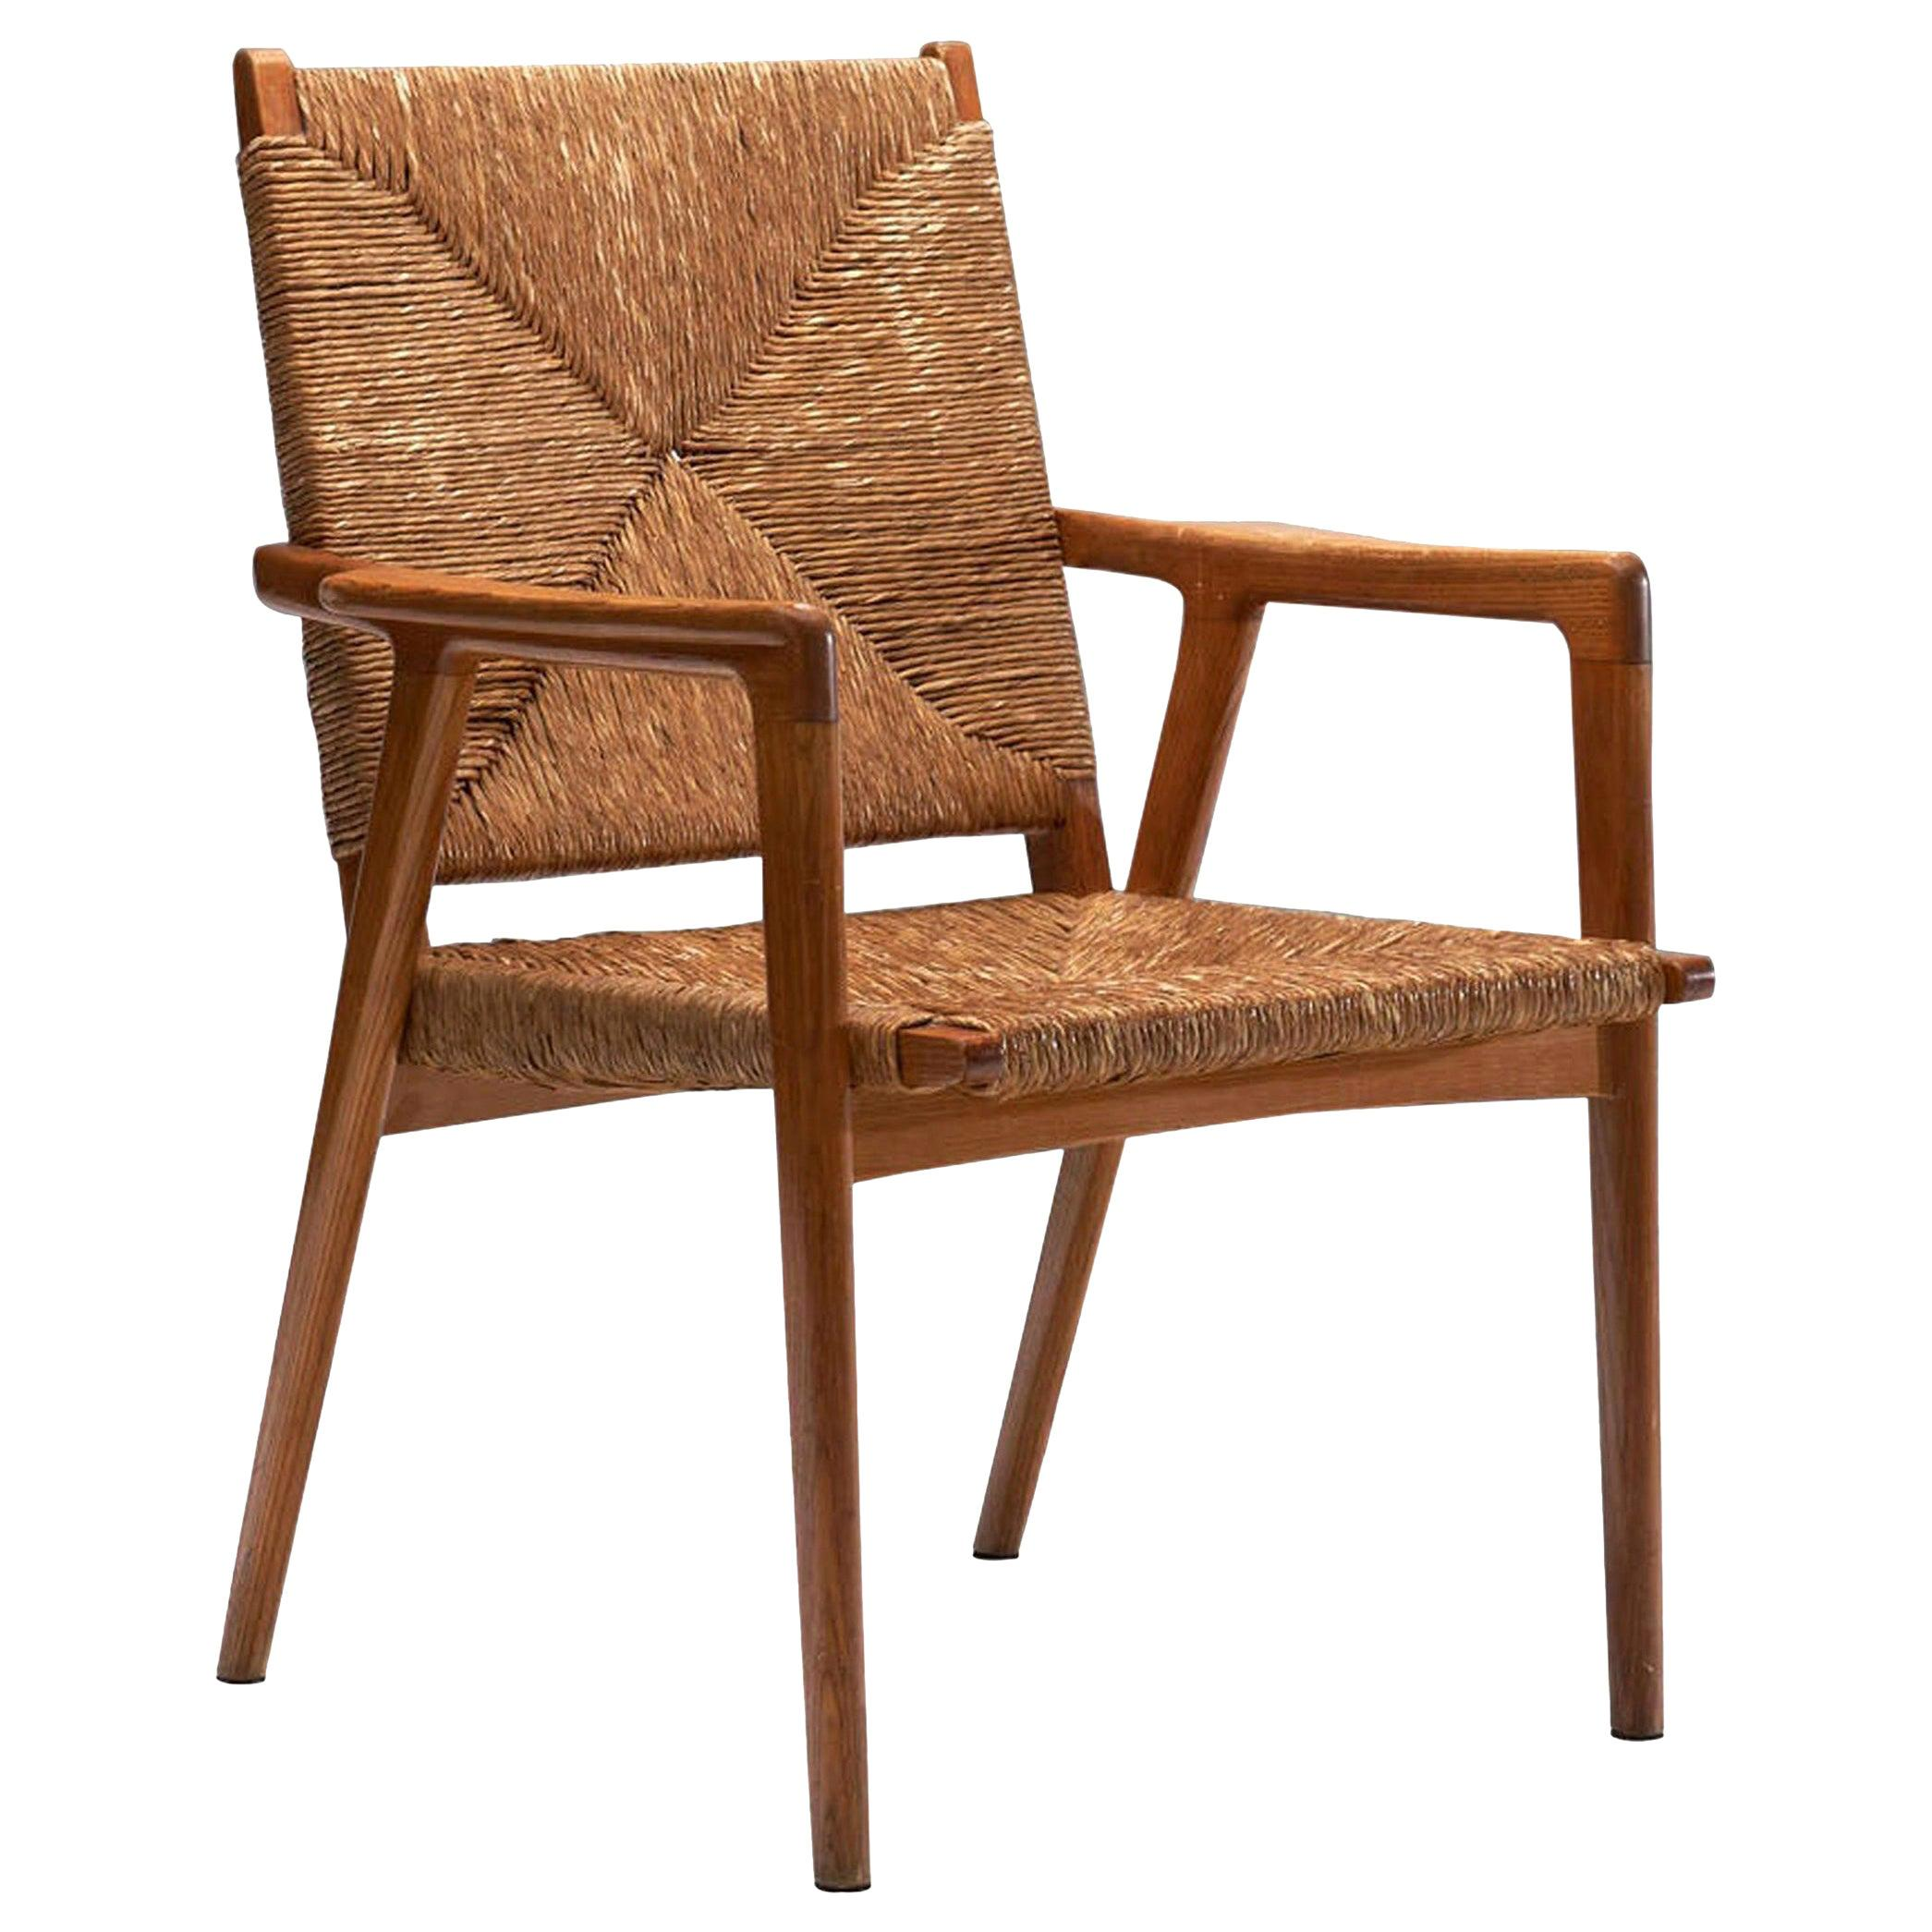 Armchair in Solid Oak and Cane, Denmark, circa 1960s